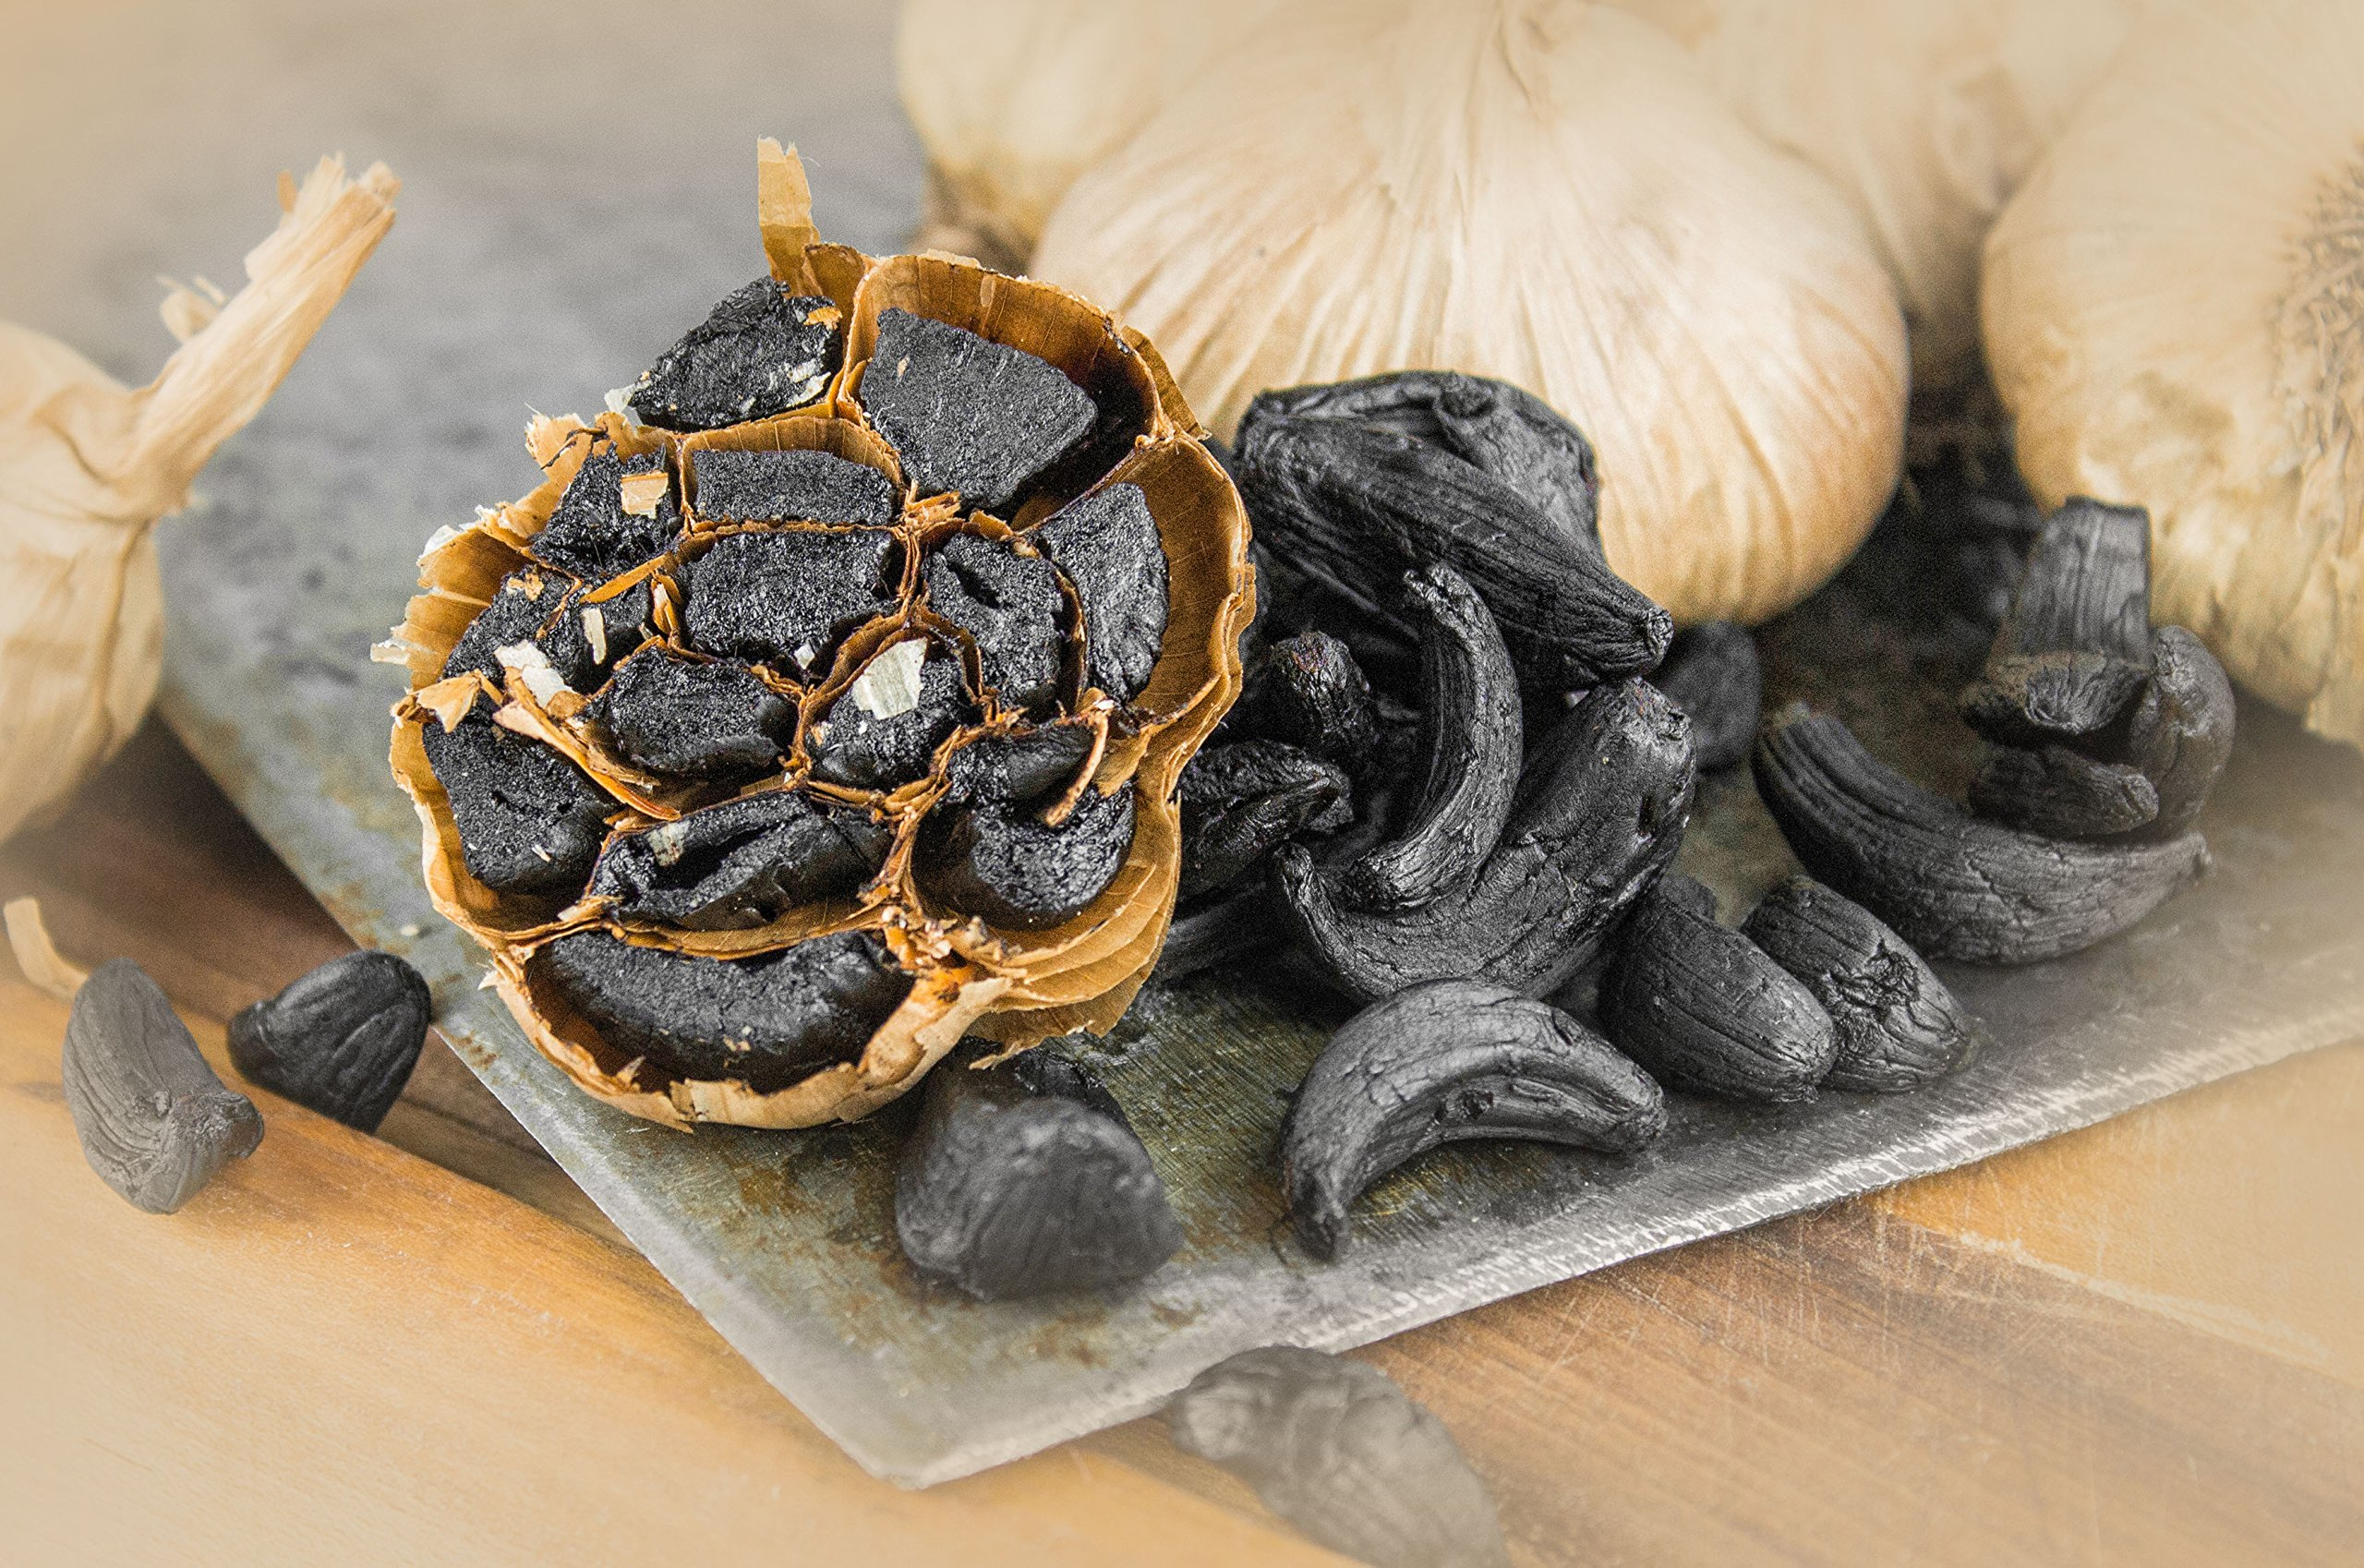 Peeled Black Garlic (1 lbs) Kosher Certified